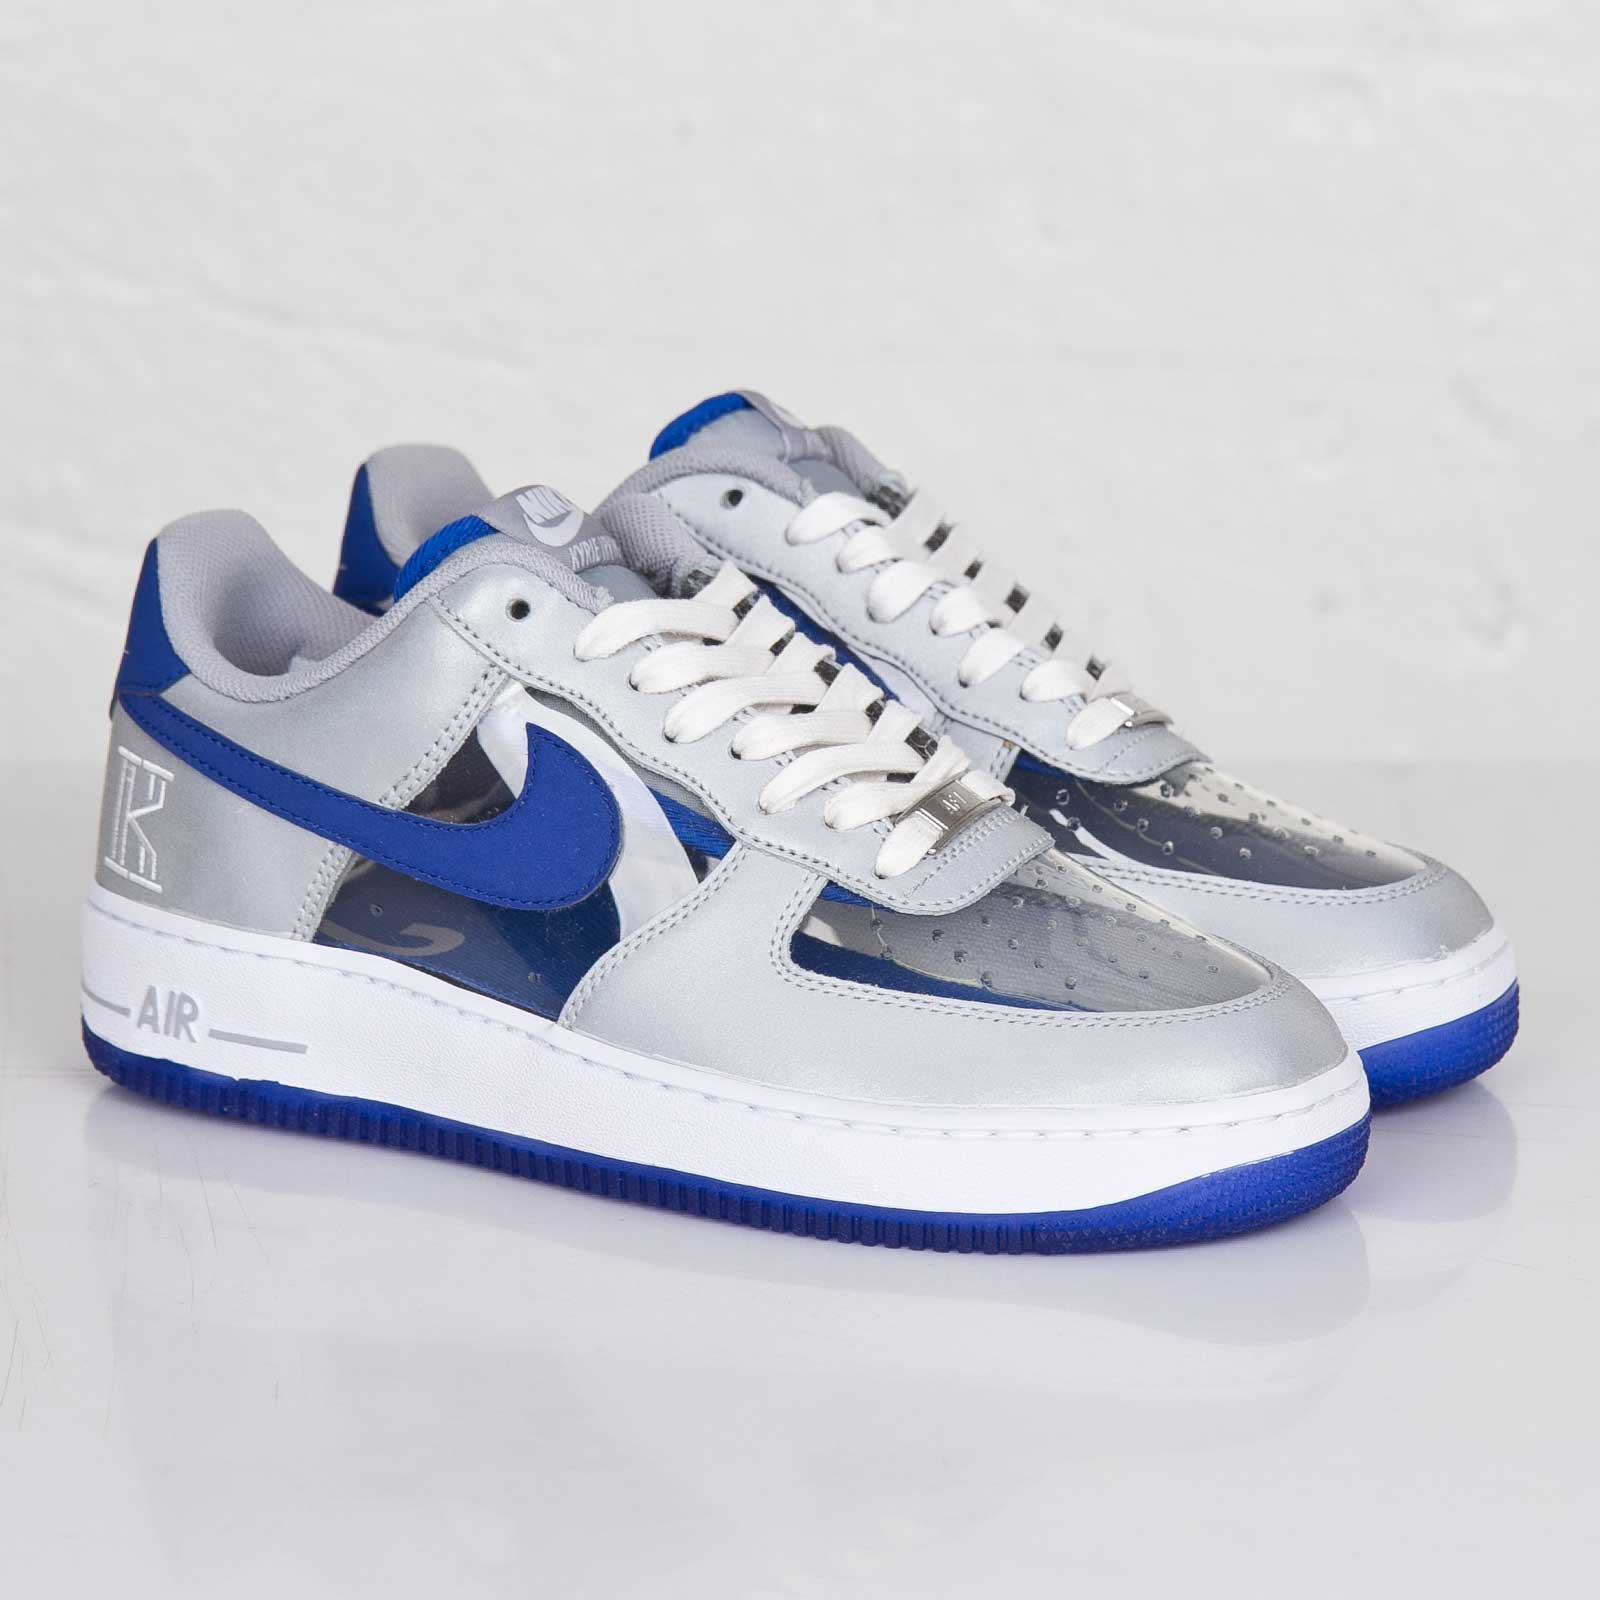 Nike Air Force 1 CMFT Signature QS 687843 002